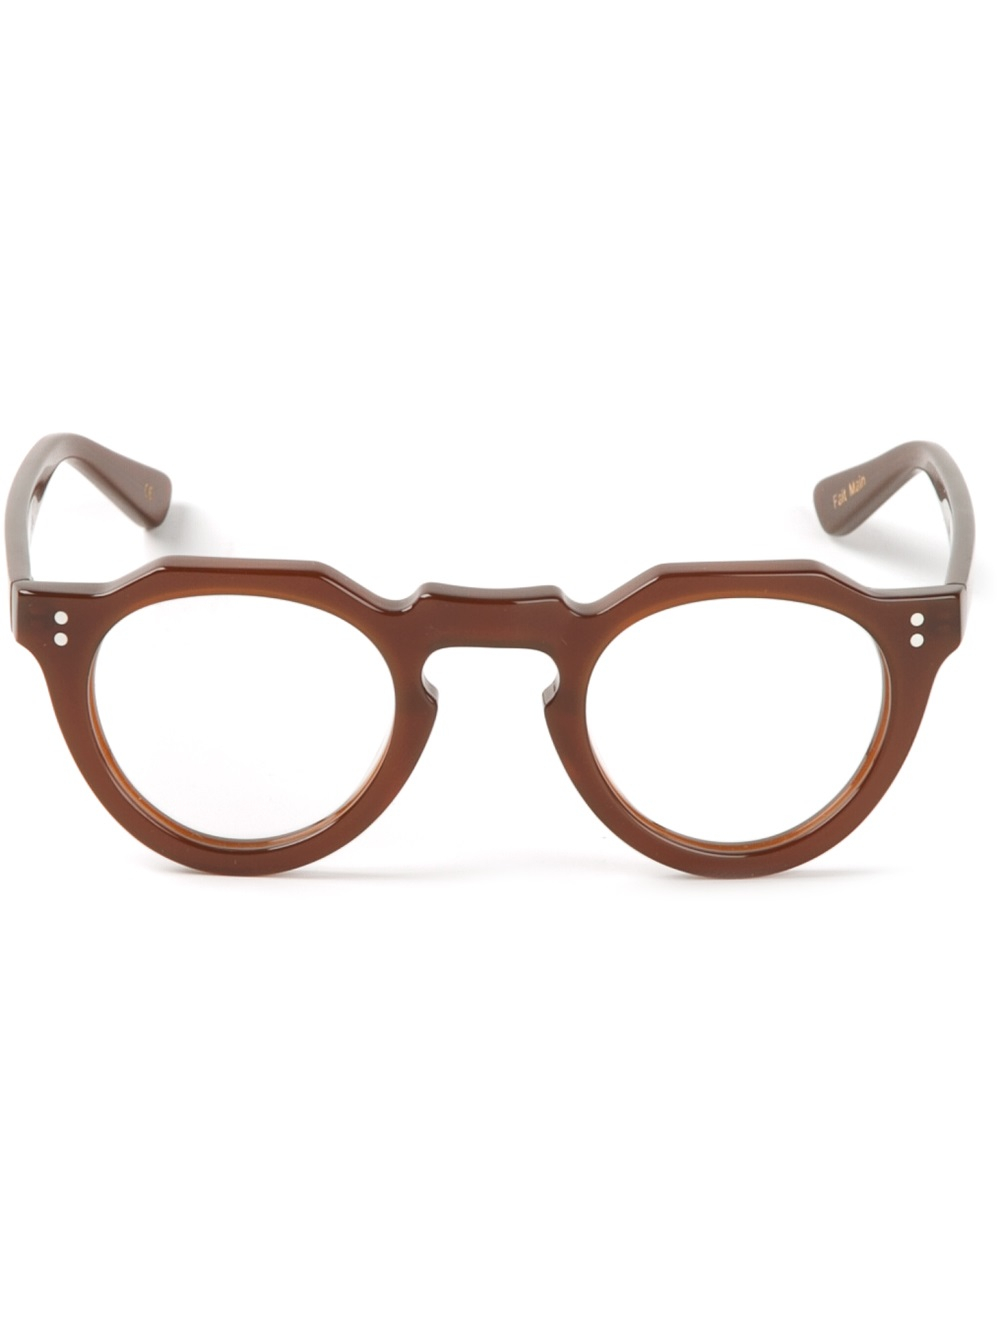 Lyst Lesca Round Glasses In Brown For Men